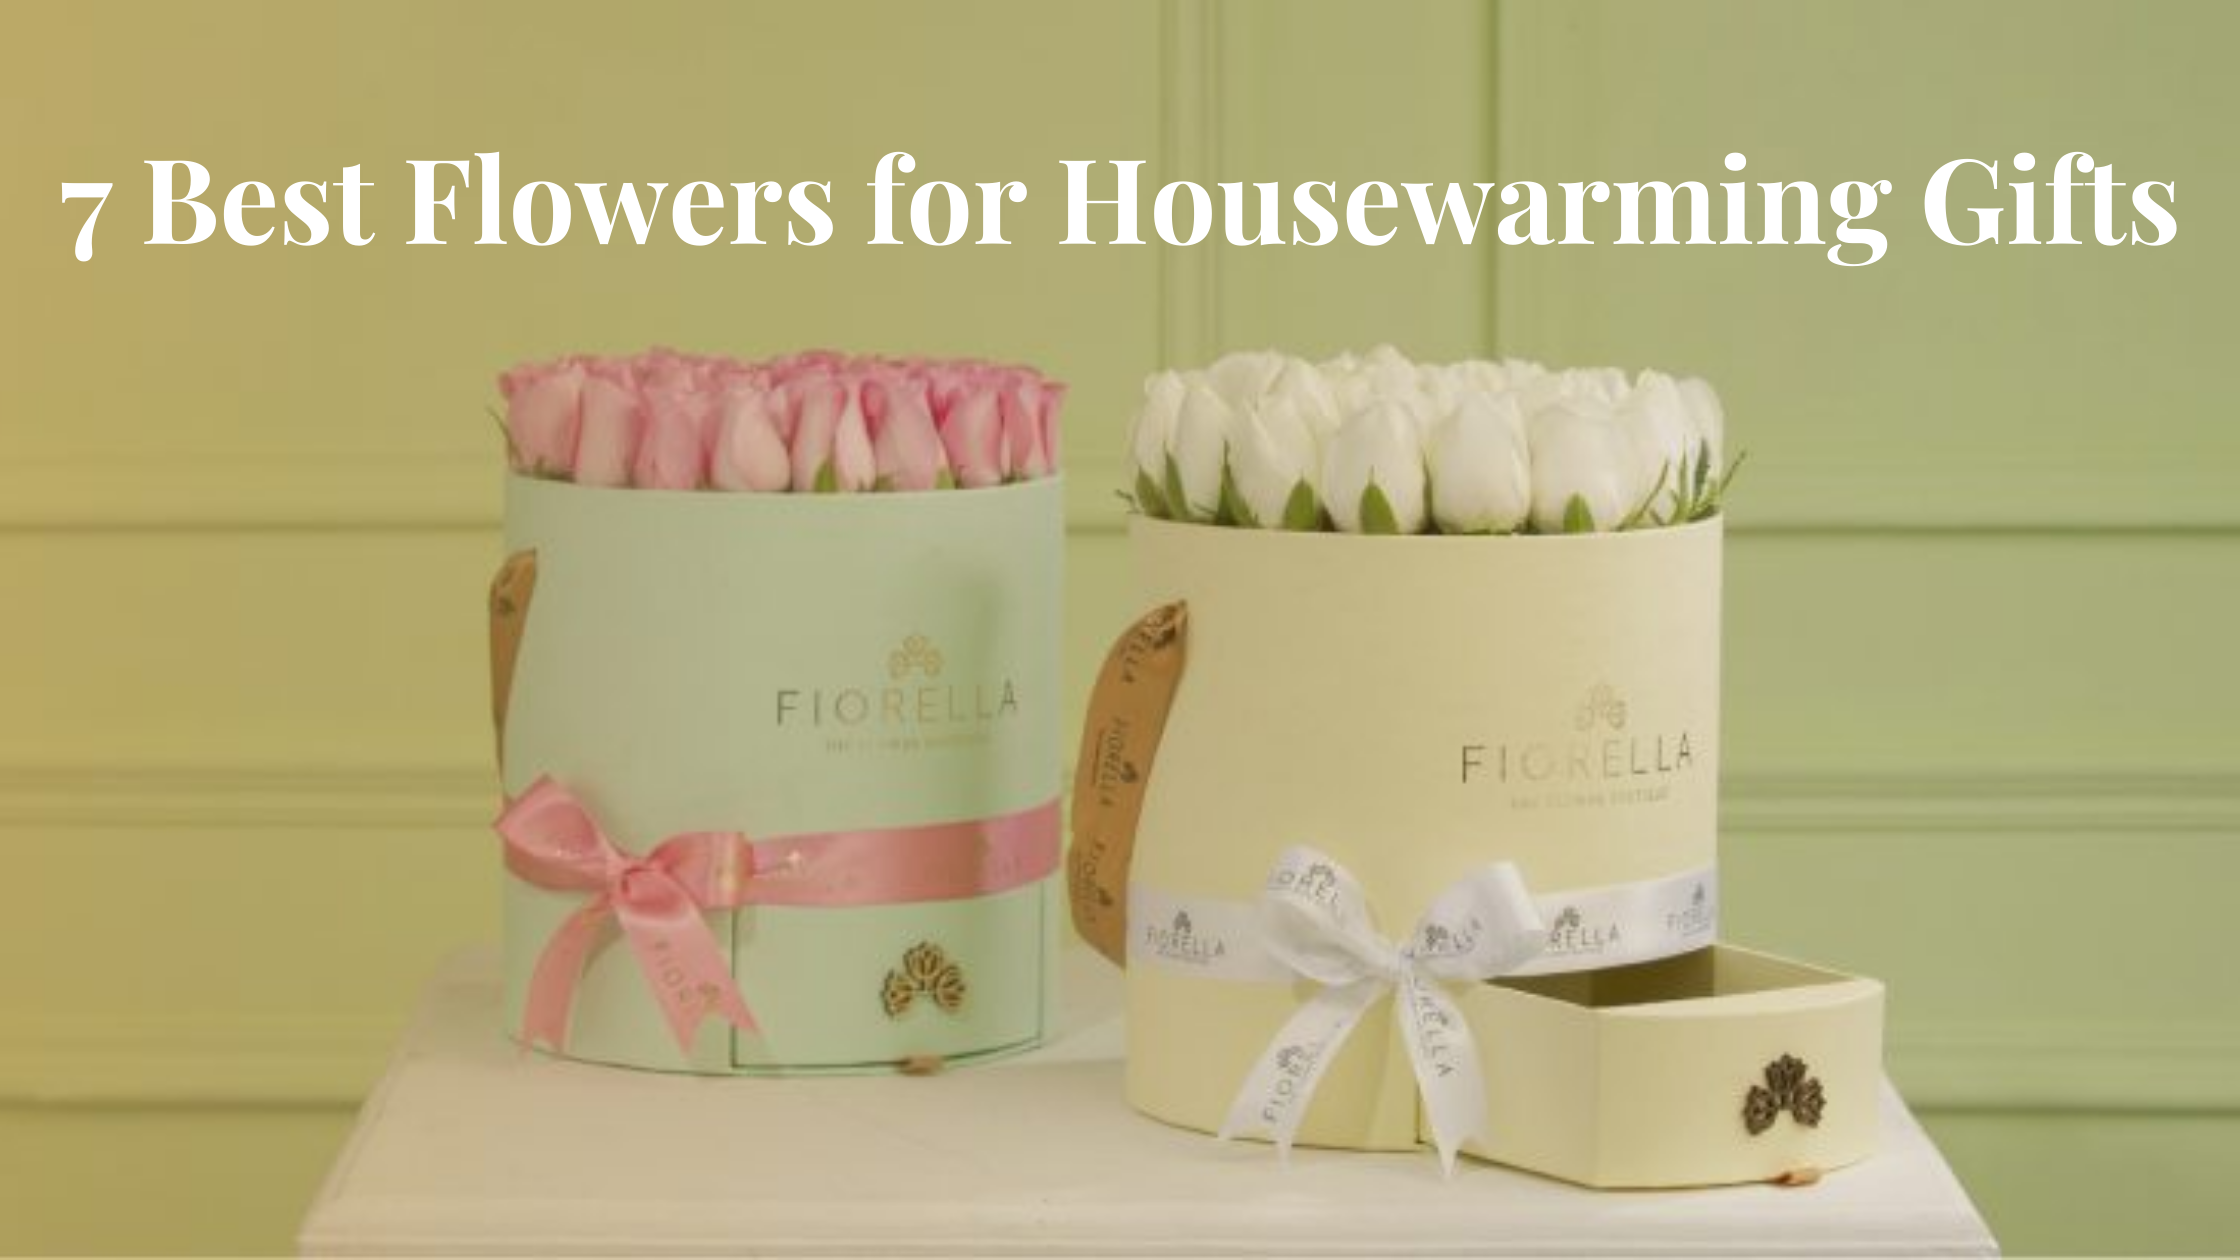 7 Best Flowers for Housewarming Gifts